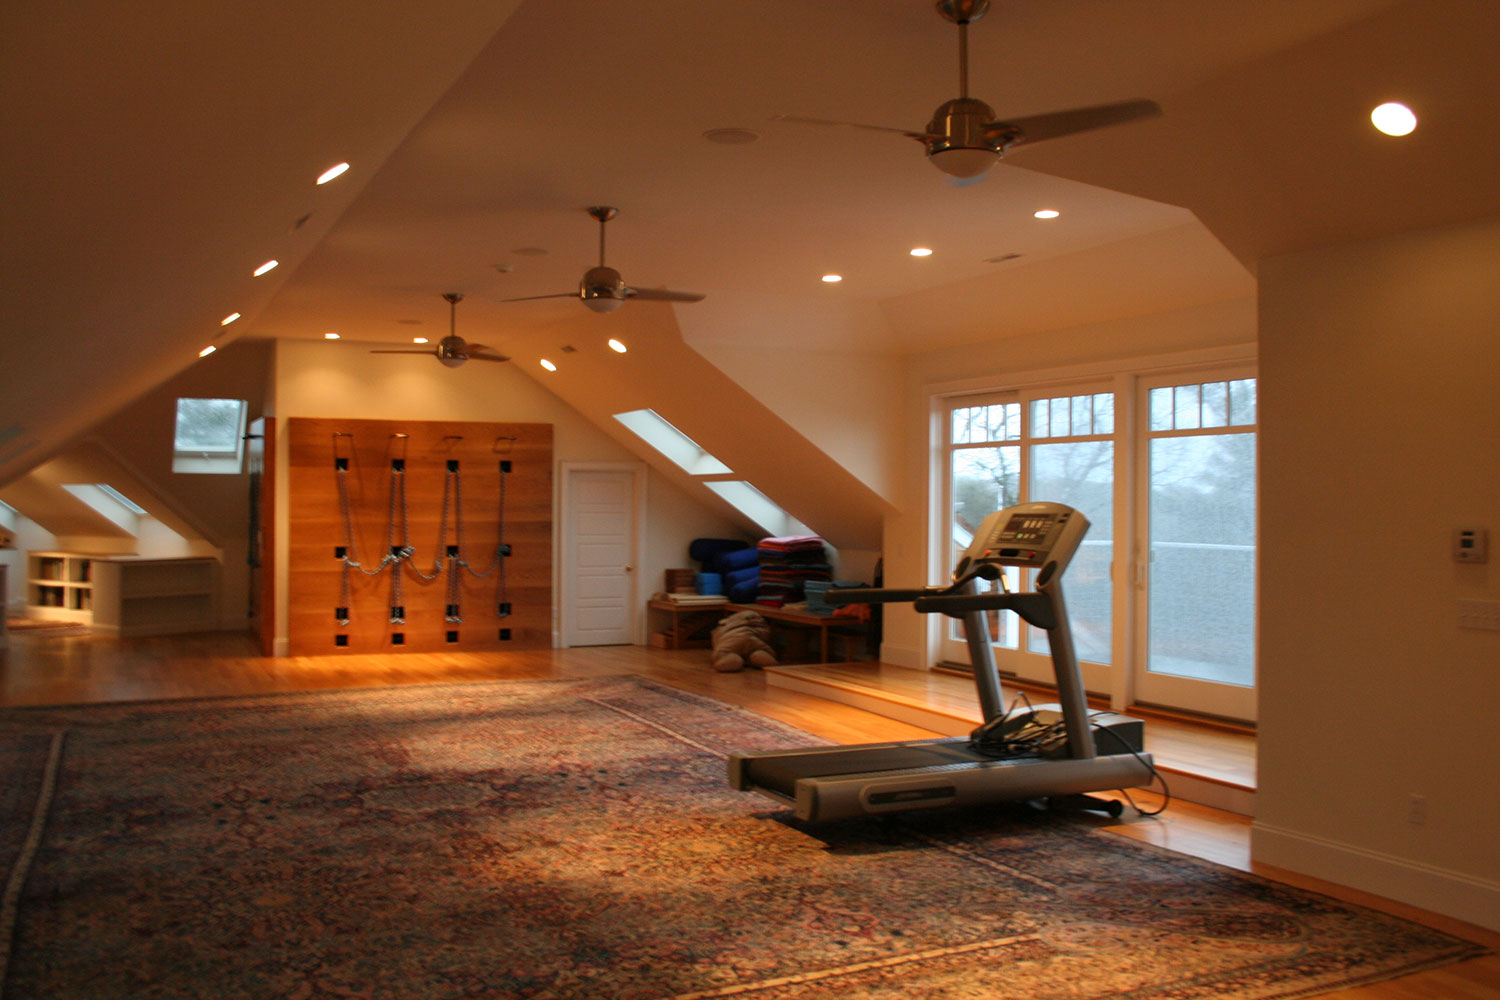 24_#26-ATTIC-WORKOUT-AREA